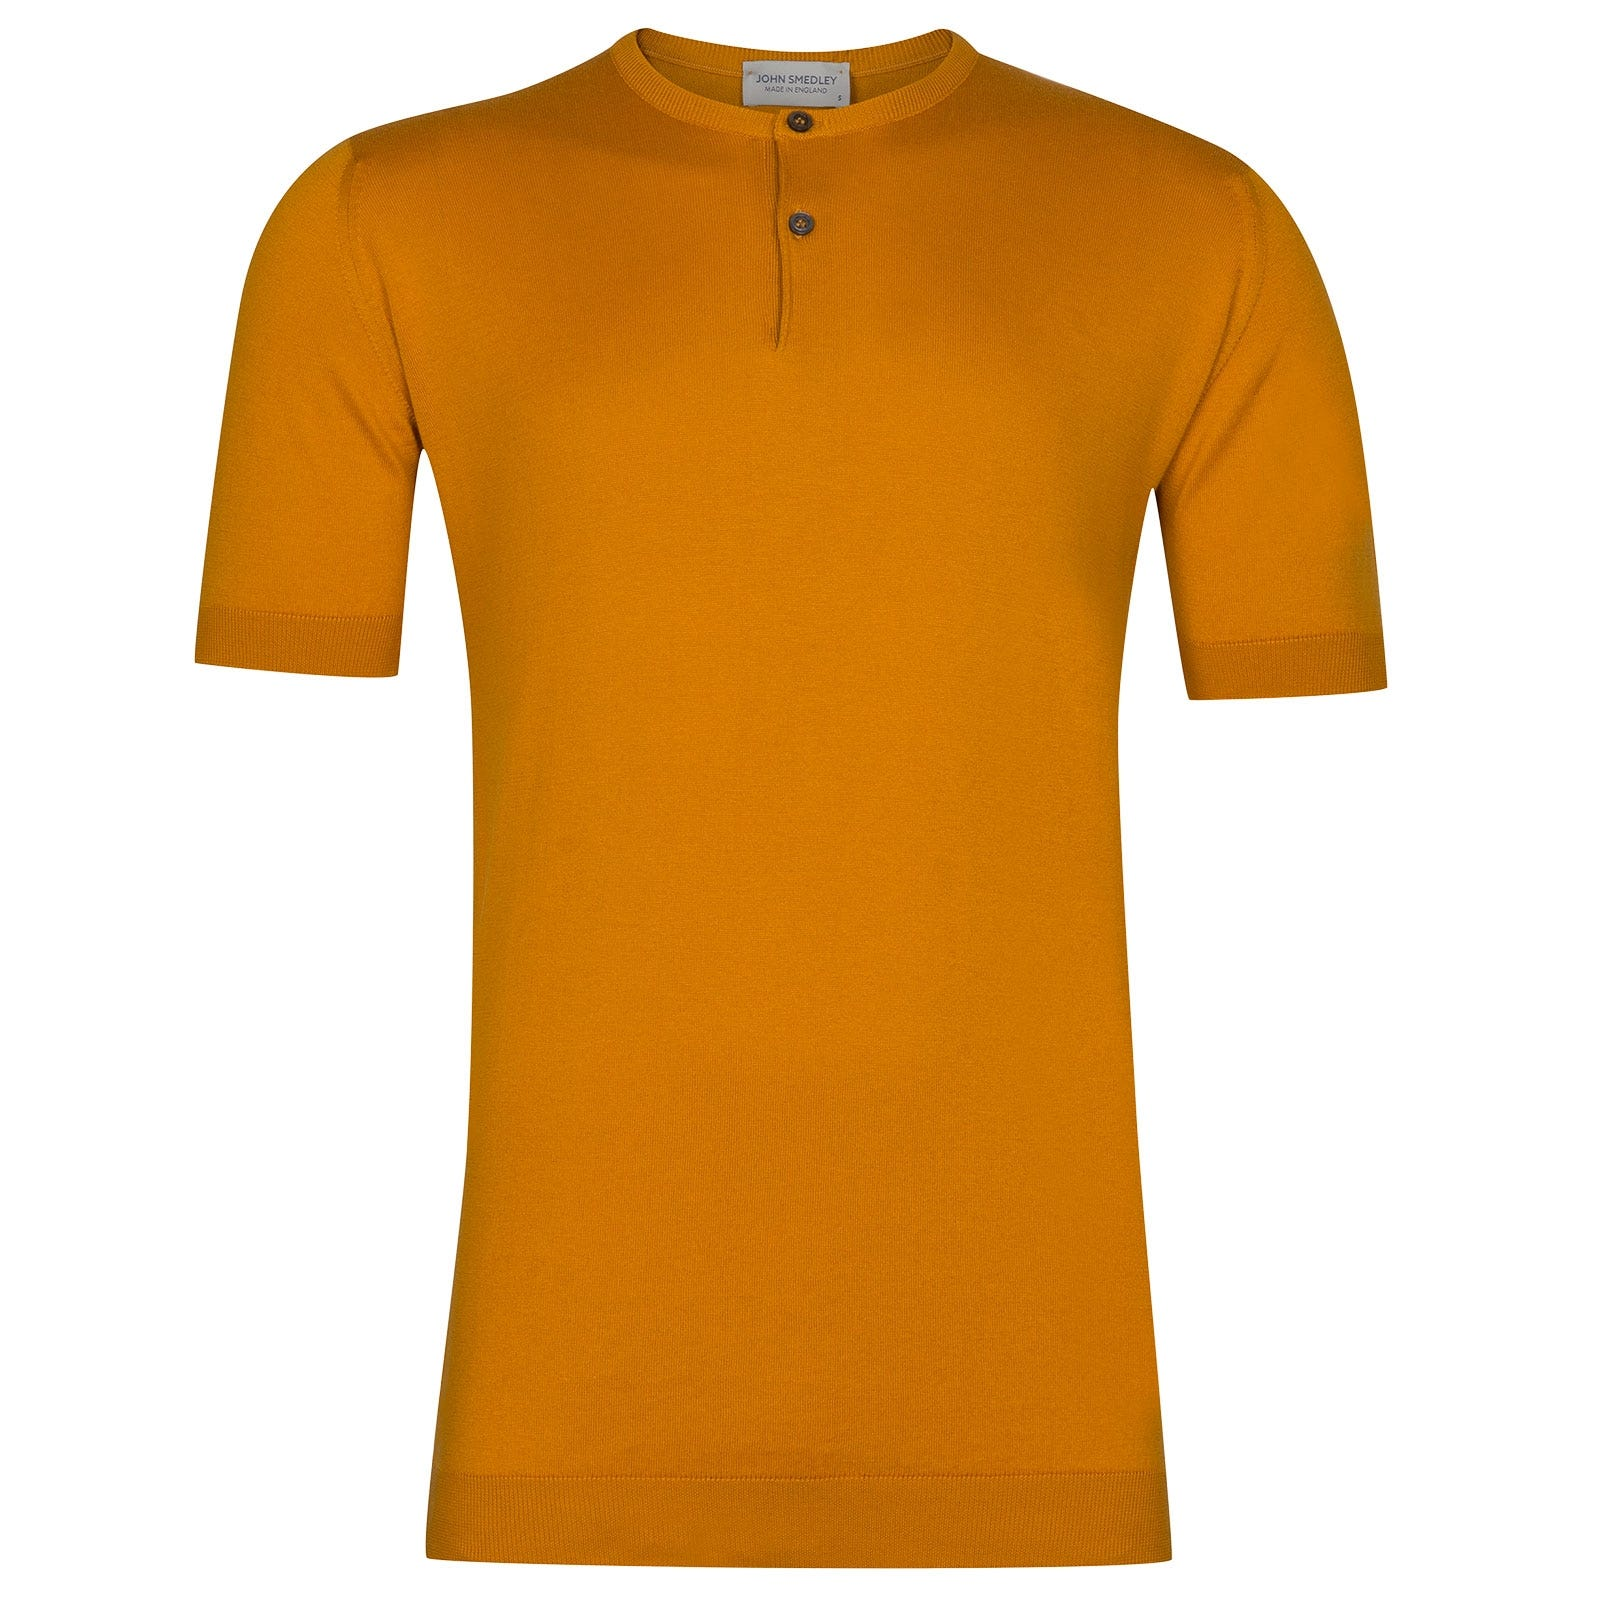 John Smedley Bennett Sea Island Cotton T-shirt in Topstitch Orange-L